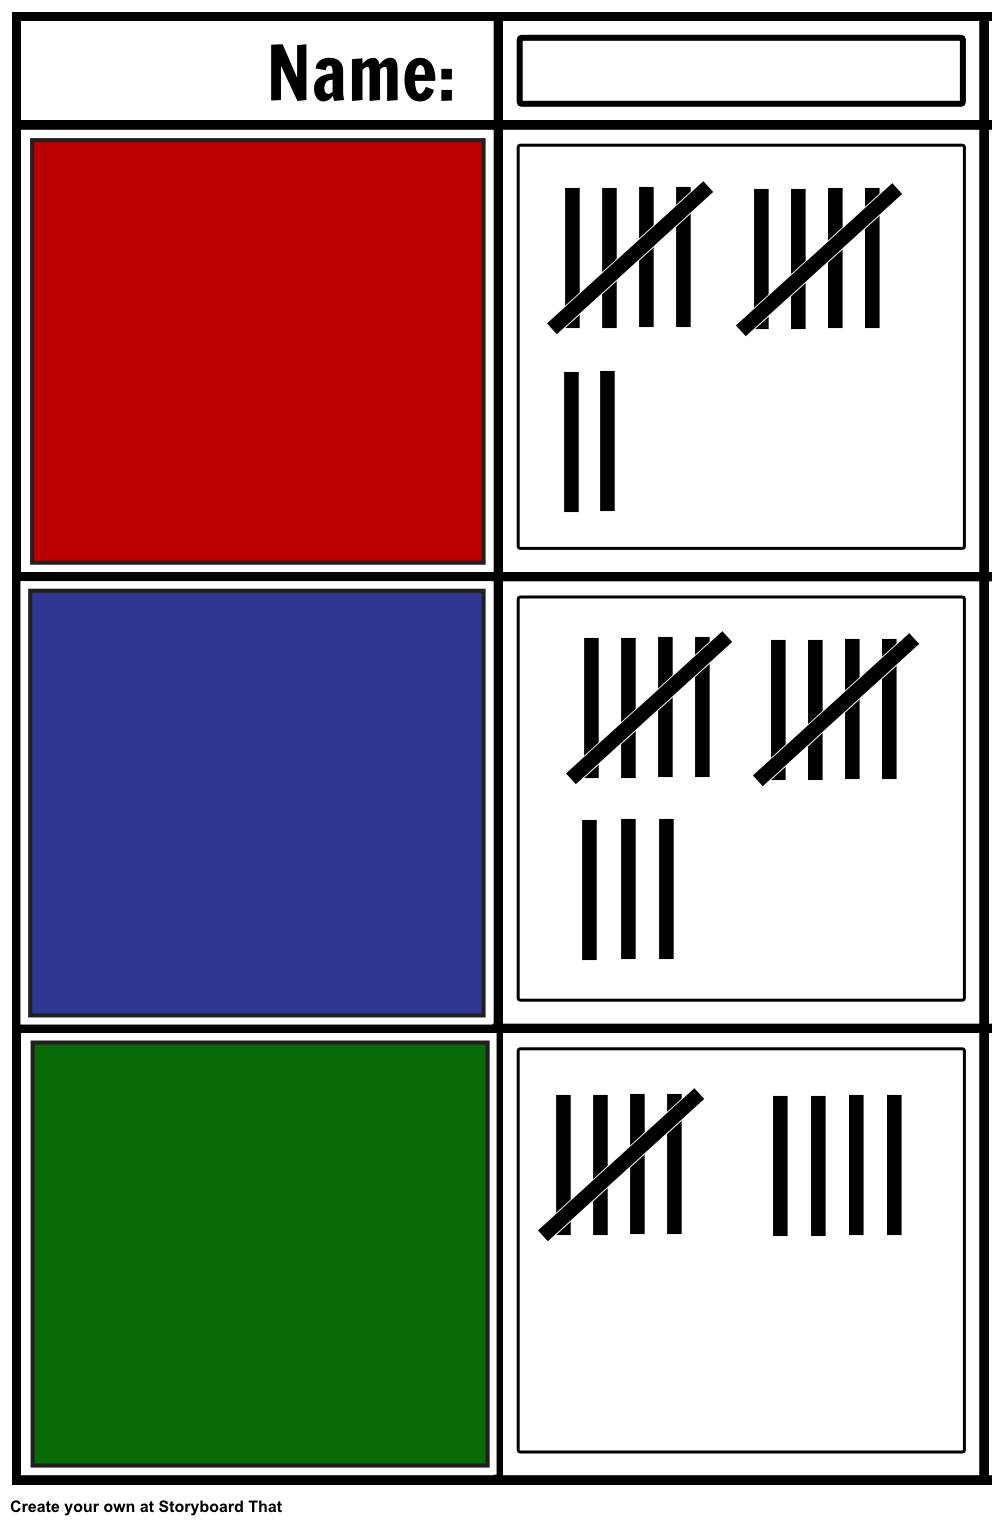 Here is an example of a tally chart with no words  | Tally Charts